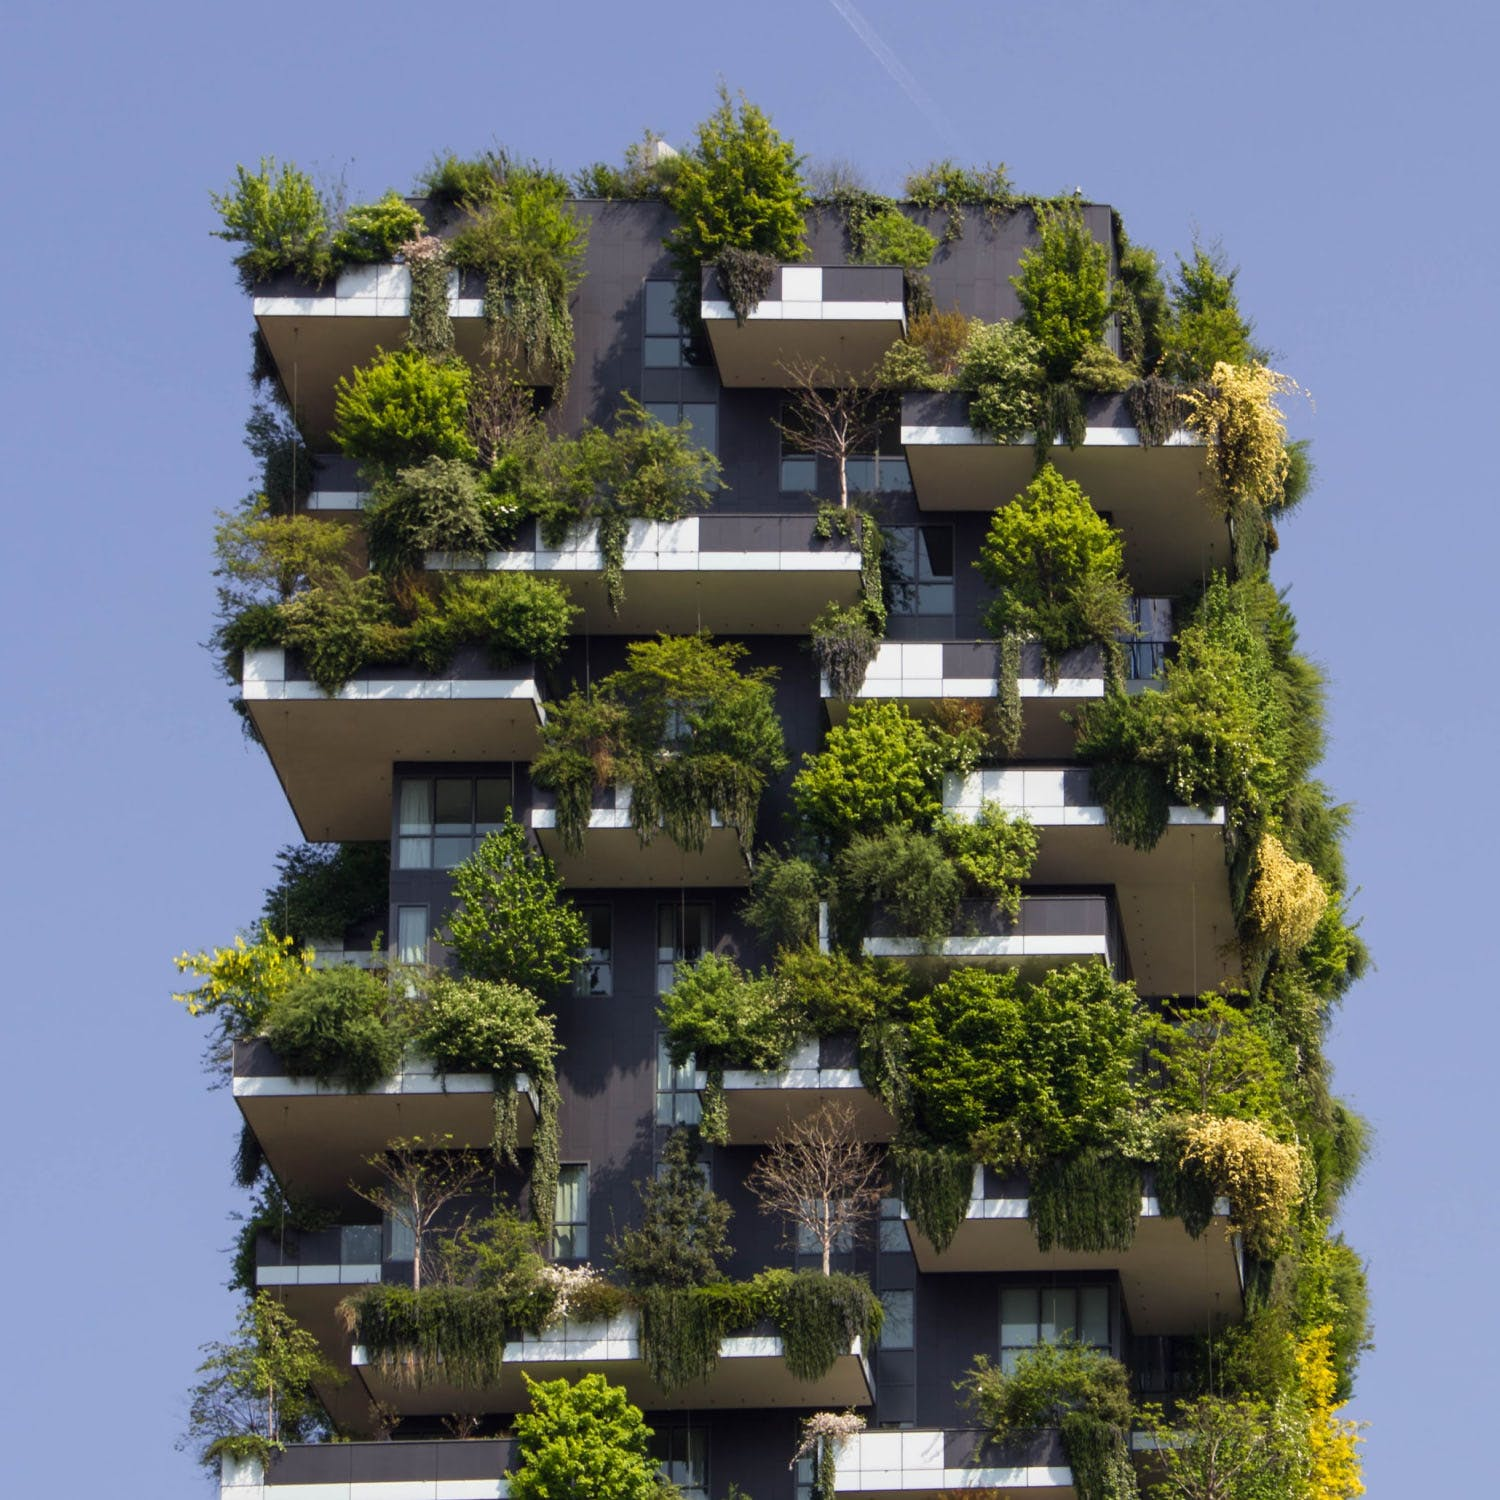 Architectural Solutions to Climate Change and Humanity's Future